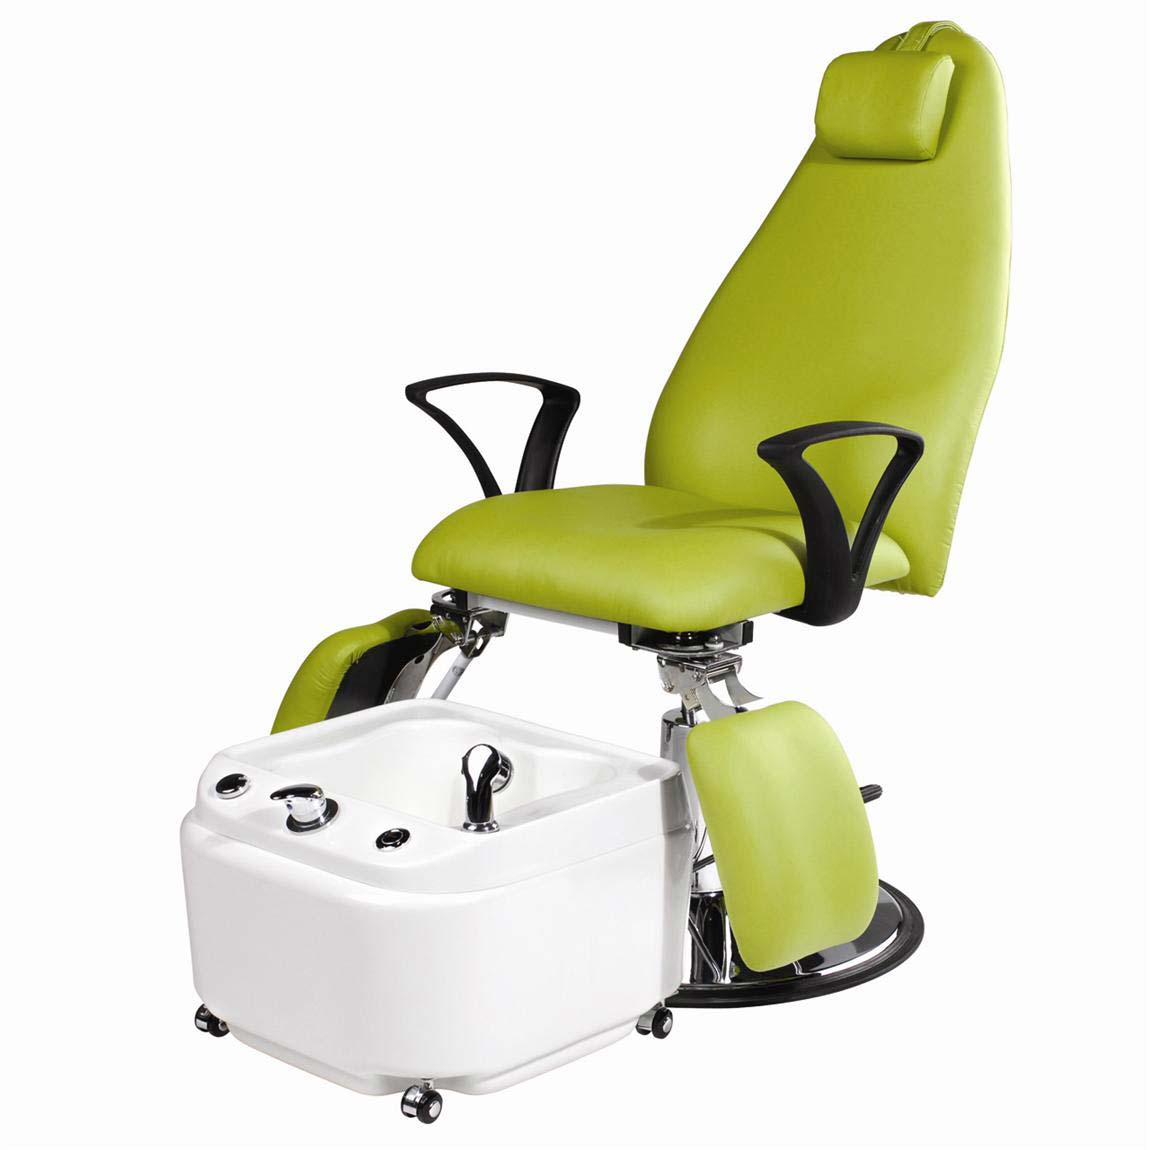 portable pedicure chairs blue accent chair with arms eurostyle spa hydraulic beauty